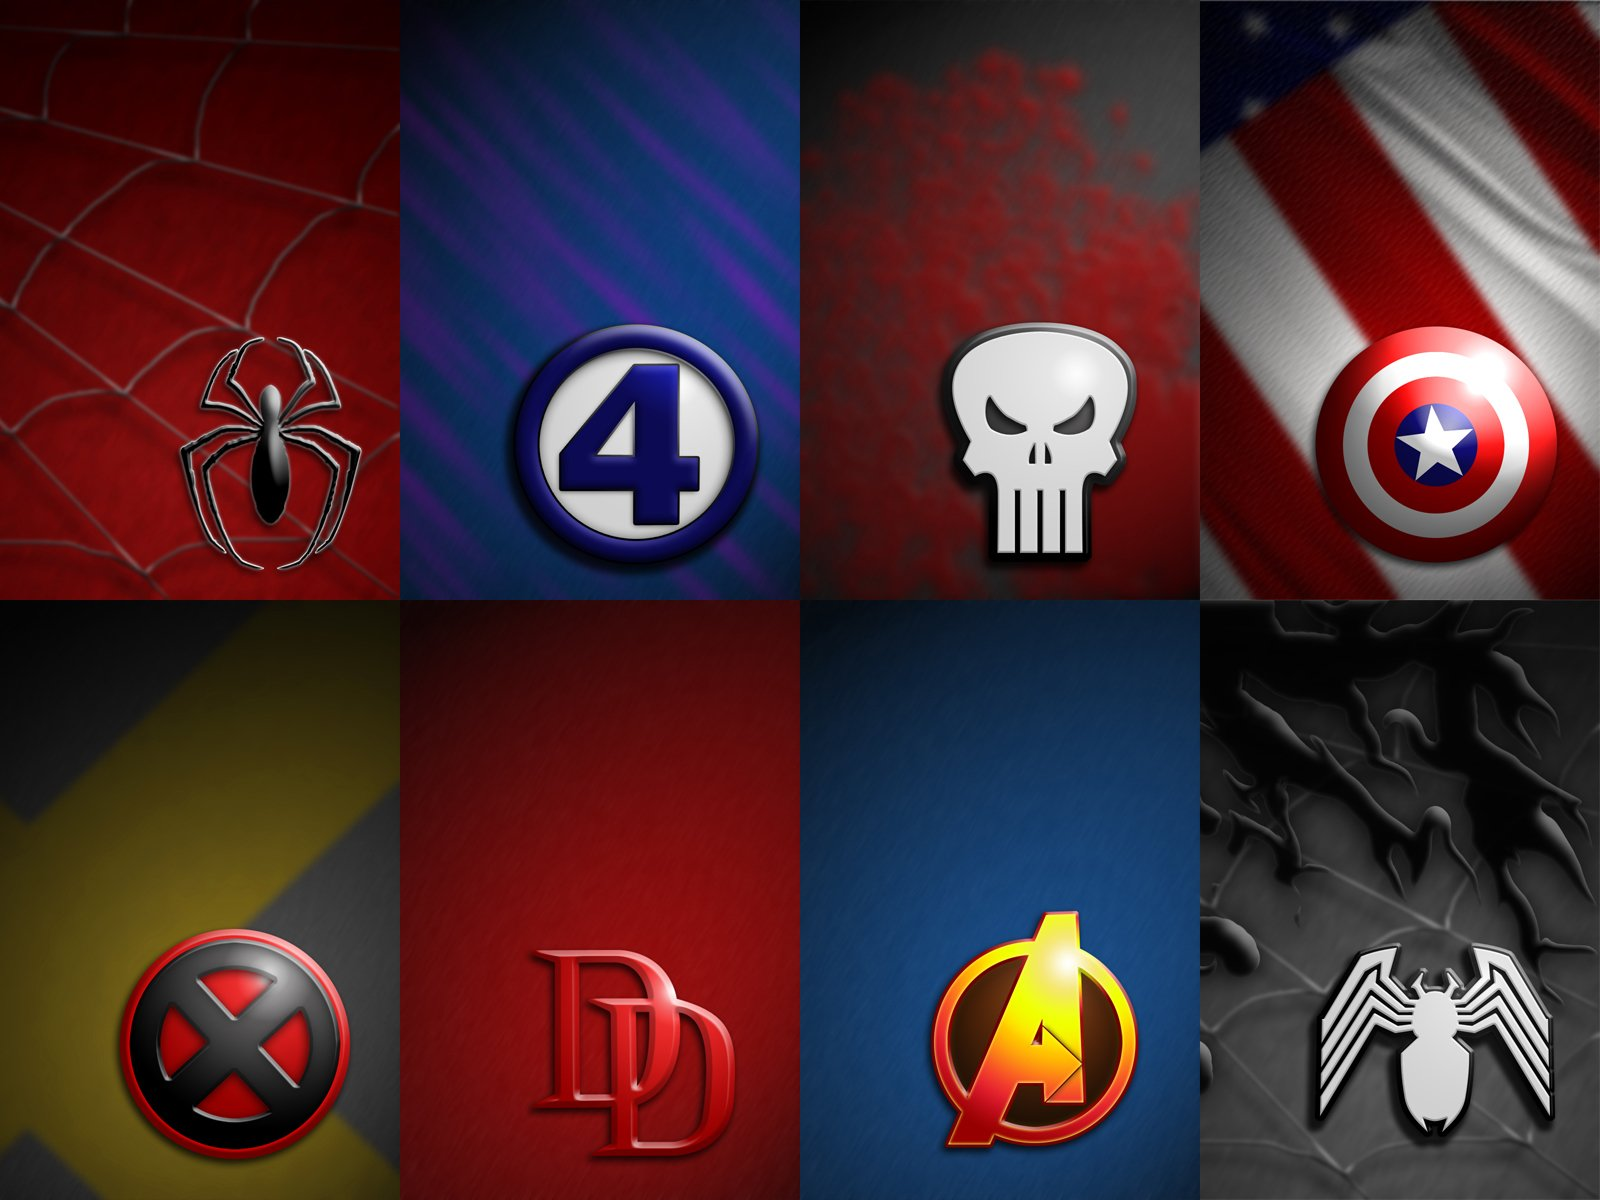 Download Wallpaper Marvel Macbook - thumb-1920-262344  Collection_935639.jpg